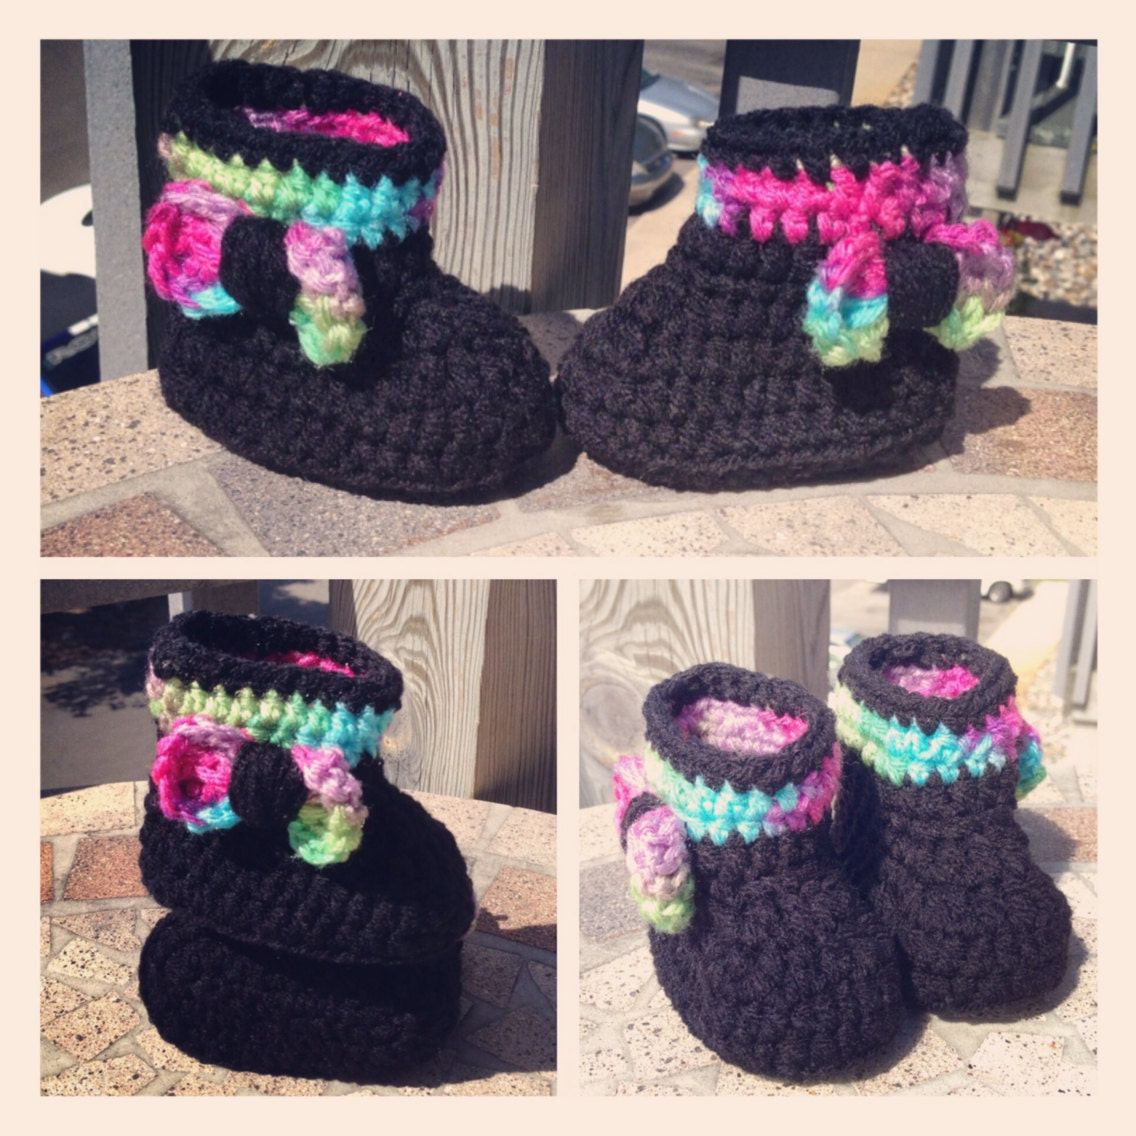 Thread Crochet Baby Booties Patterns : Crochet baby booties tall ugg style by LoveLeeDesignsXOXO ...